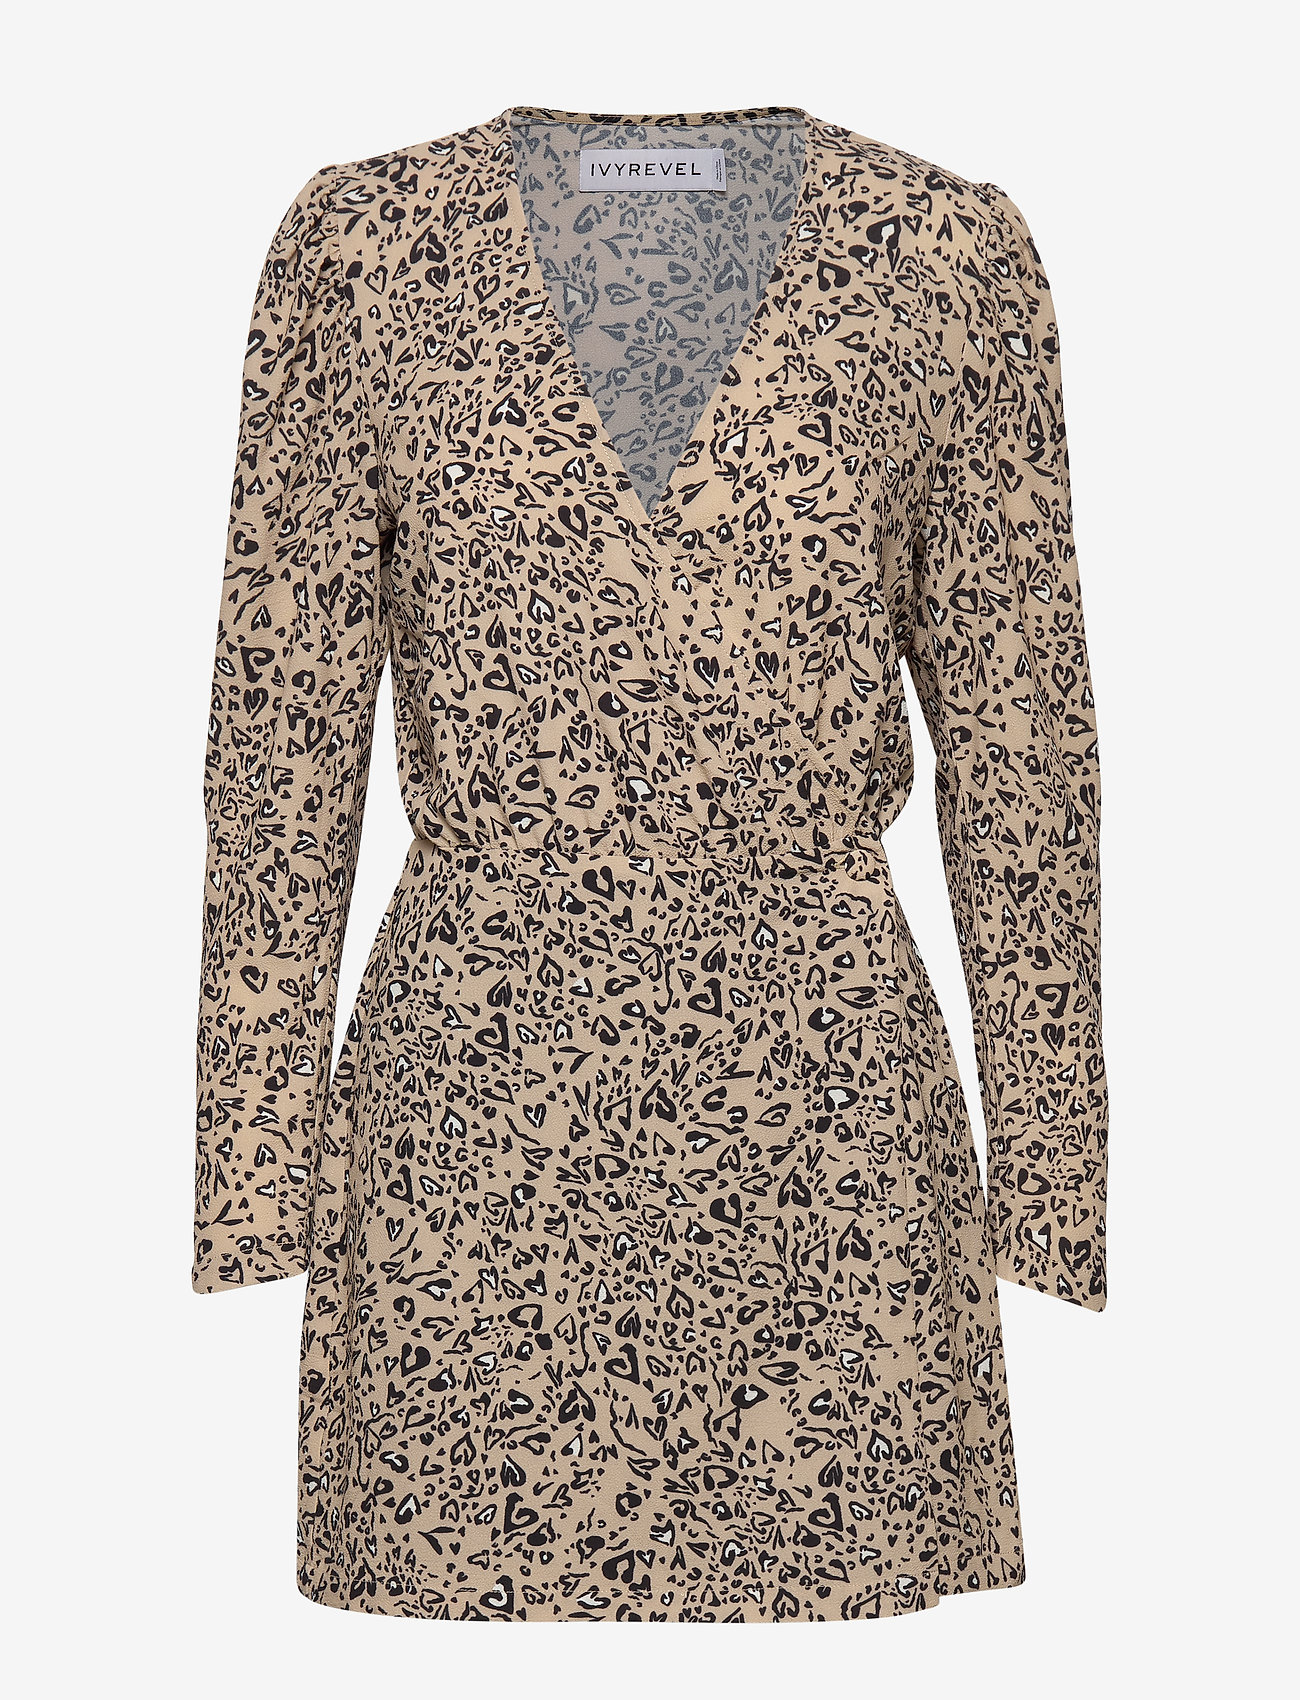 Ivyrevel - WOVEN WRAP MINI DRESS - robes portefeuille - animal hearts - 0